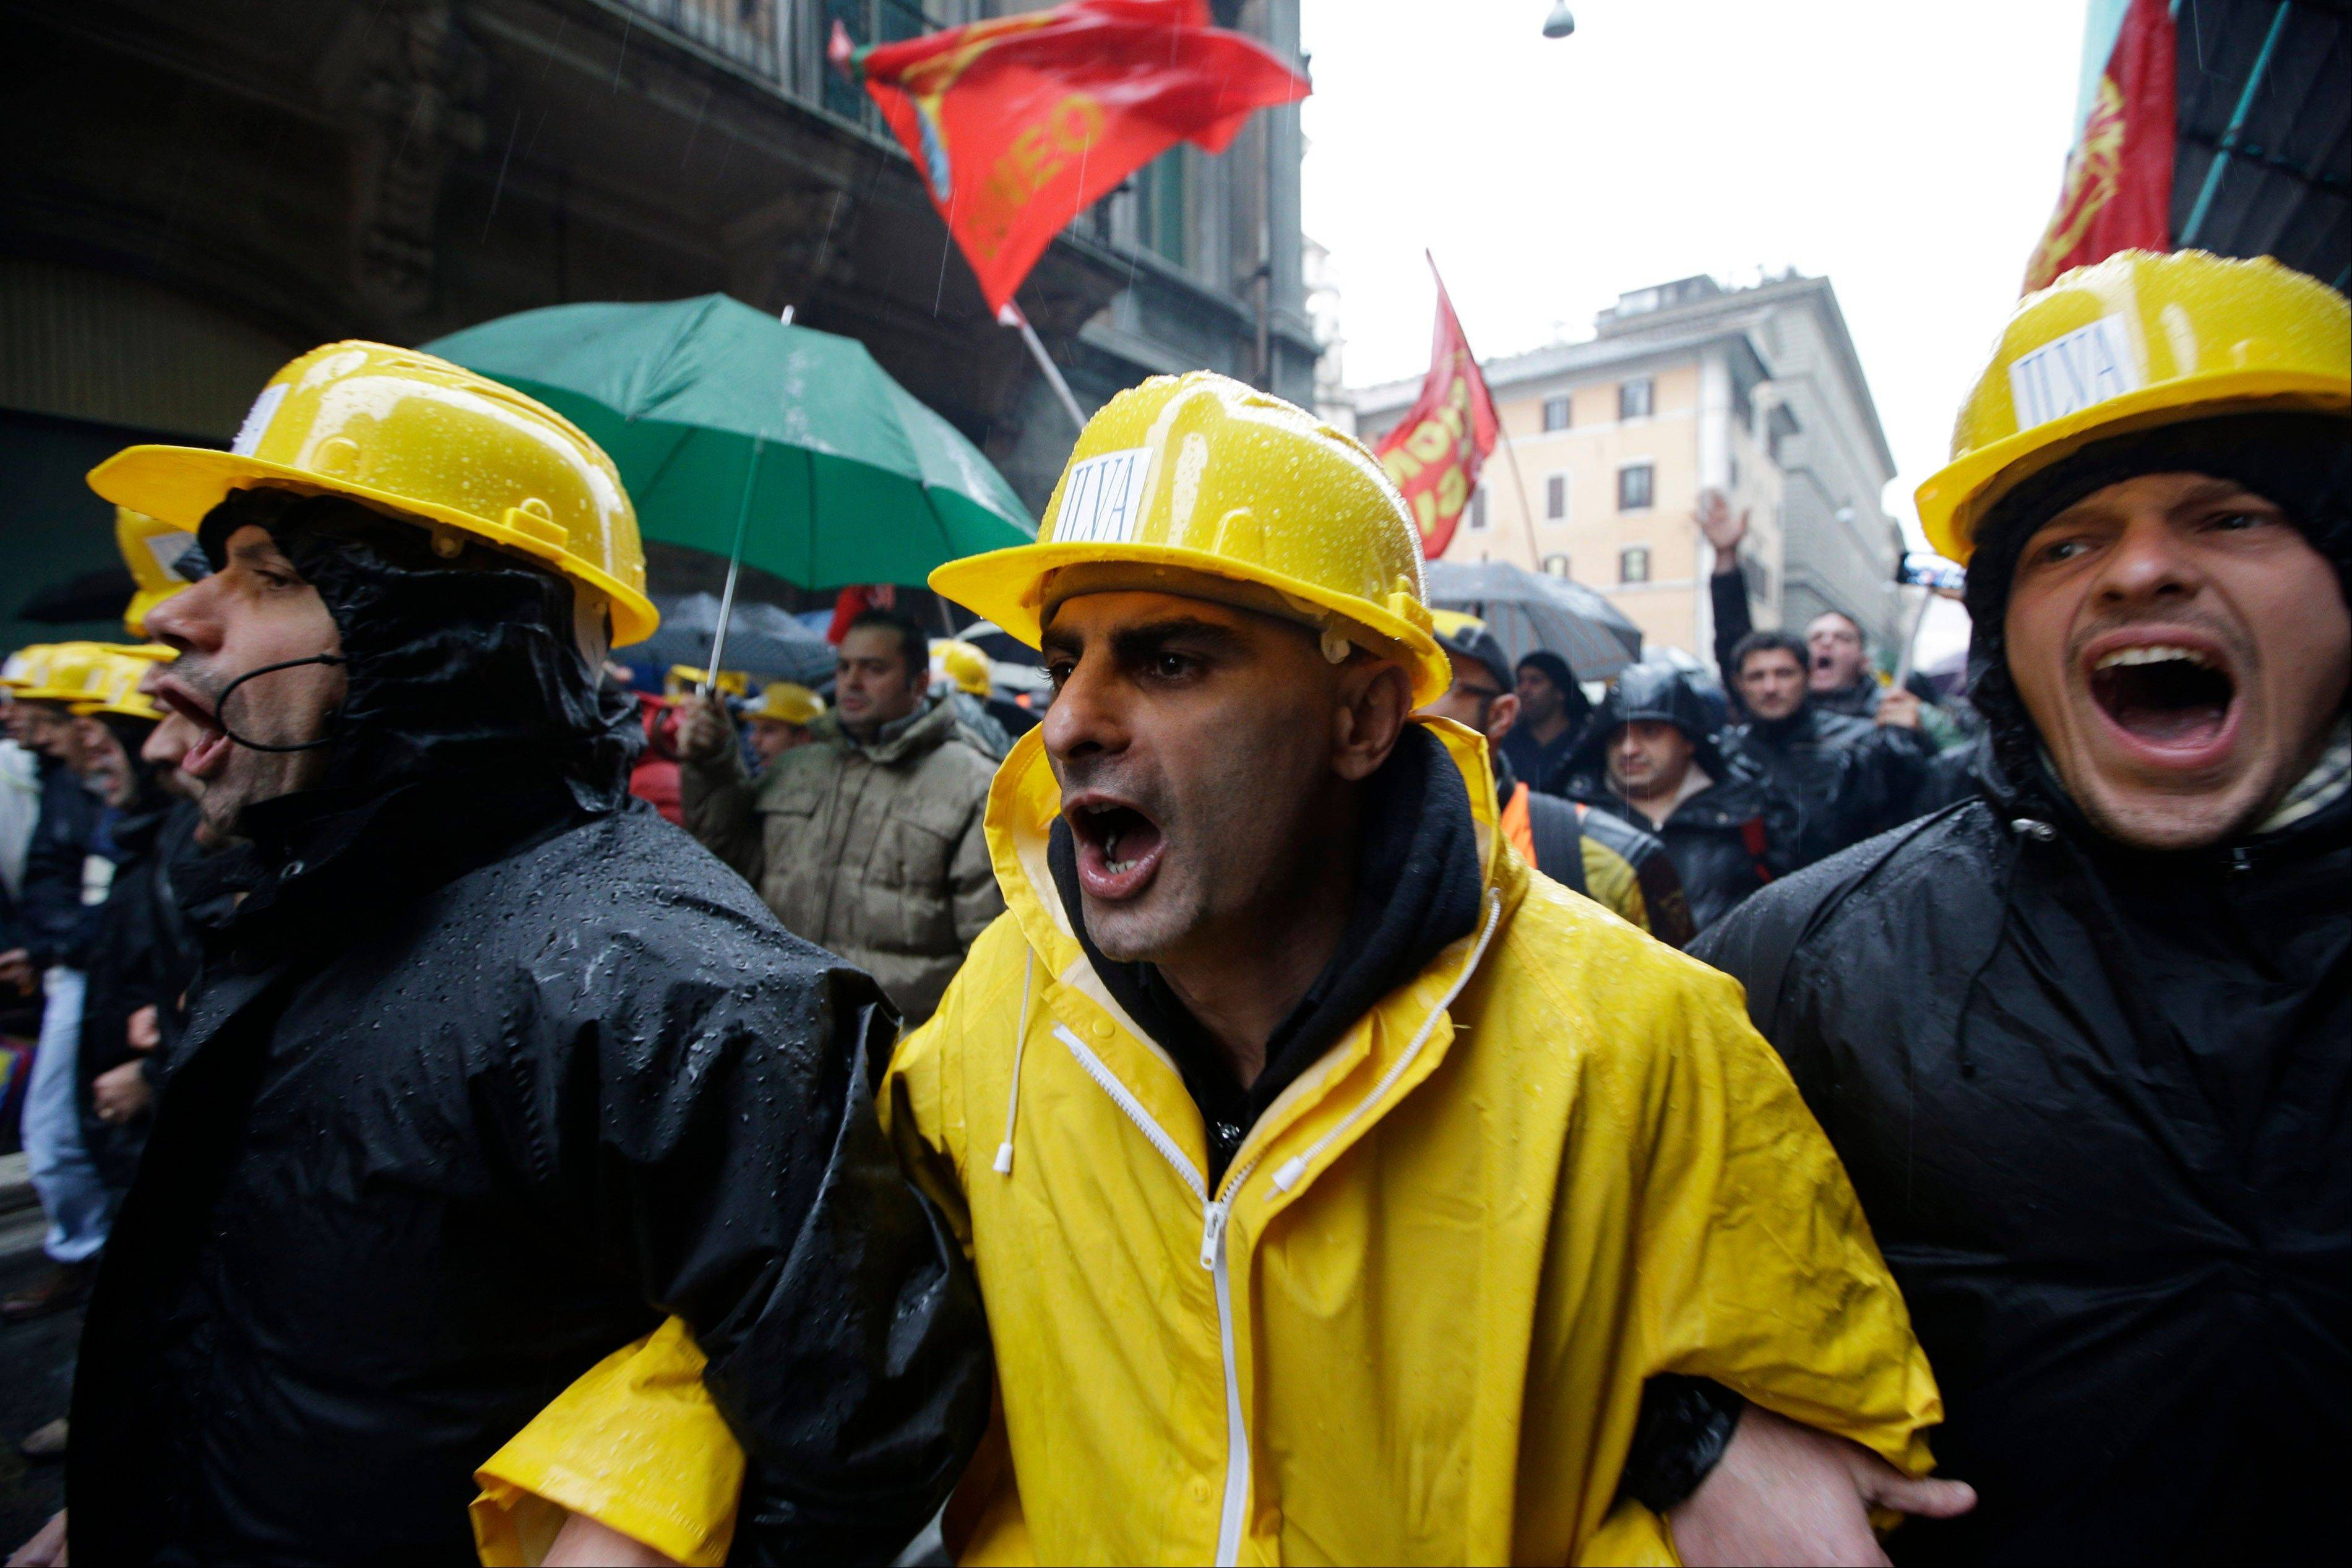 Ilva workers participate in a rally outside the Italian parliament, in Rome, Thursday, Nov. 29, 2012. Ilva, a steel plant in southern Italy at the center of an environmental scandal announced that it plans to close after police acting on prosecutors' warrants sequestered recent steel products bound for the market.